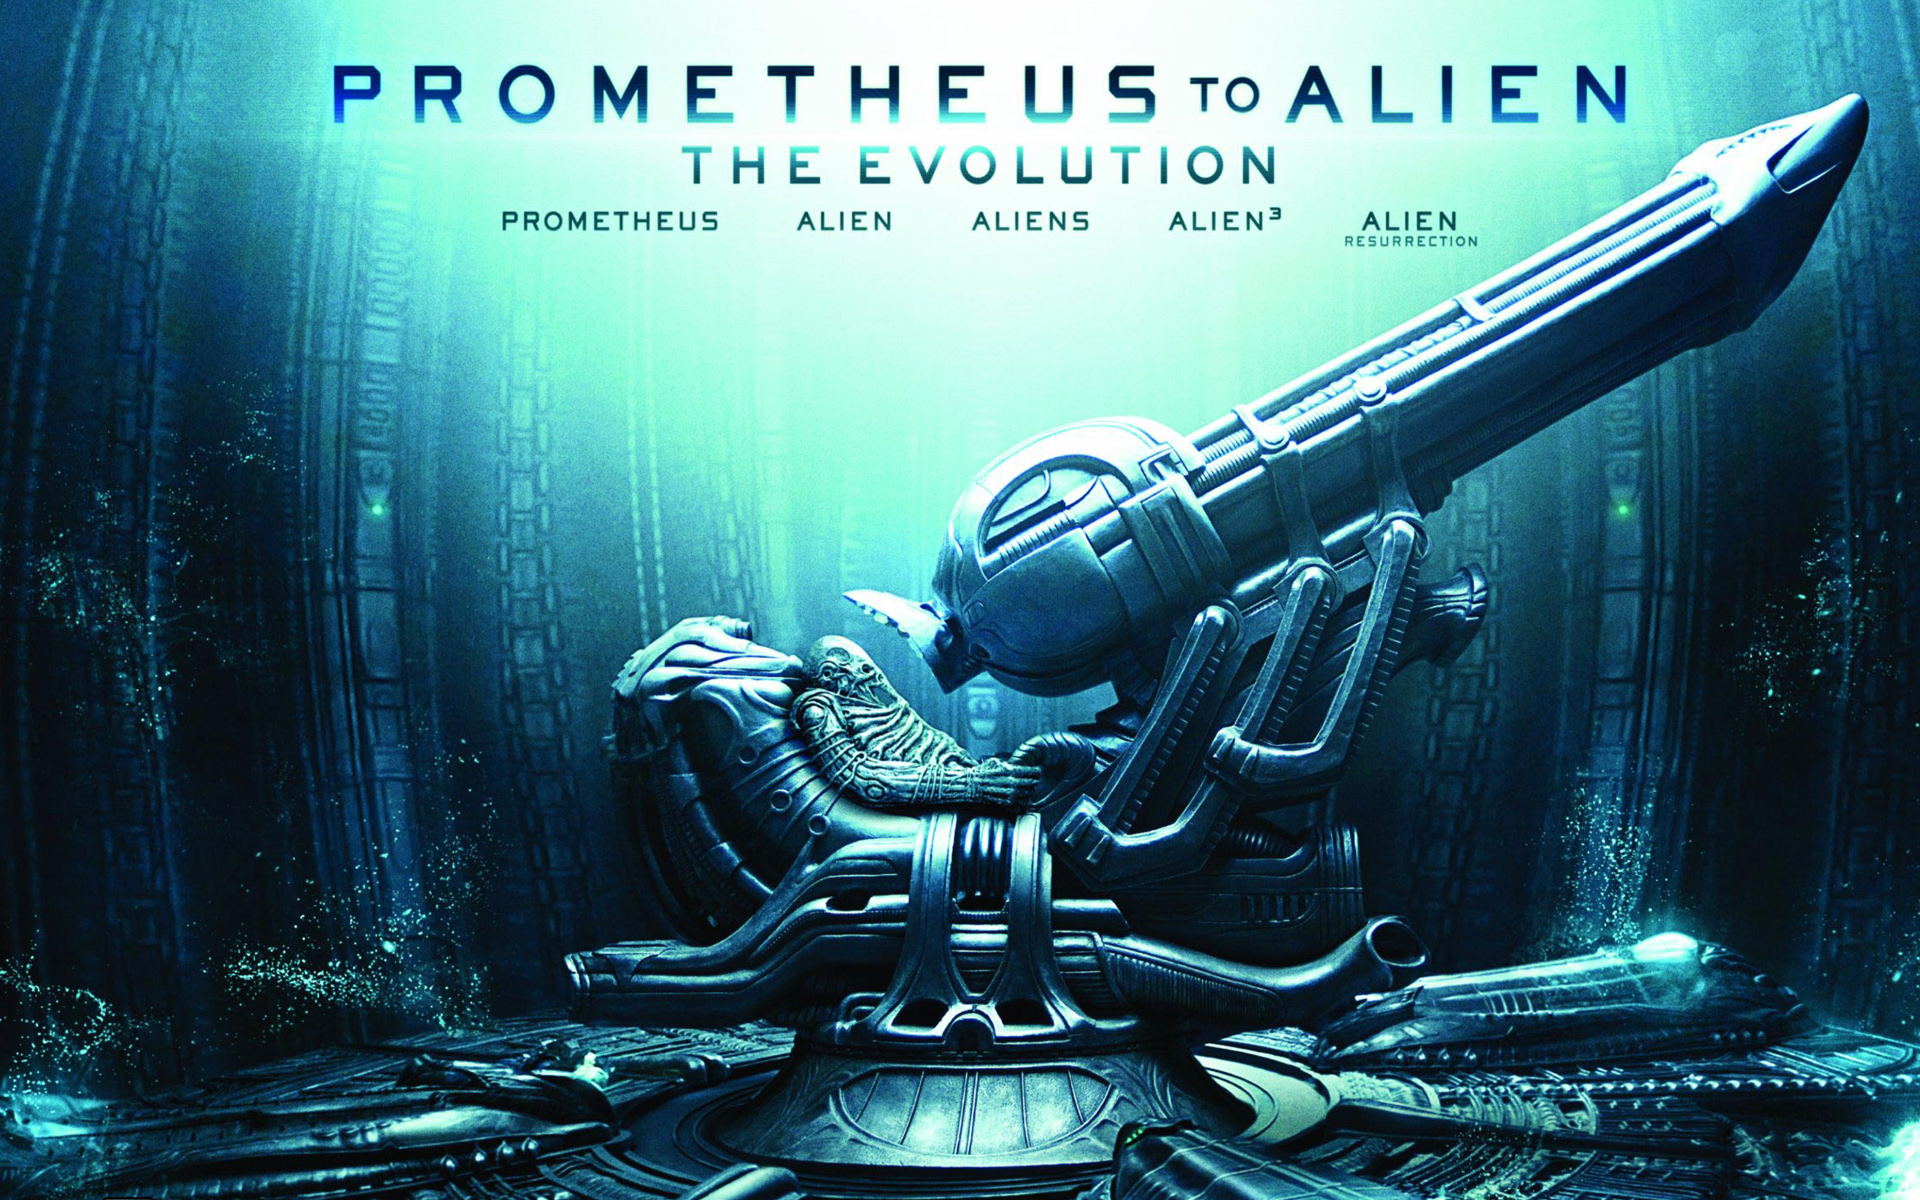 Technology in Prometheus